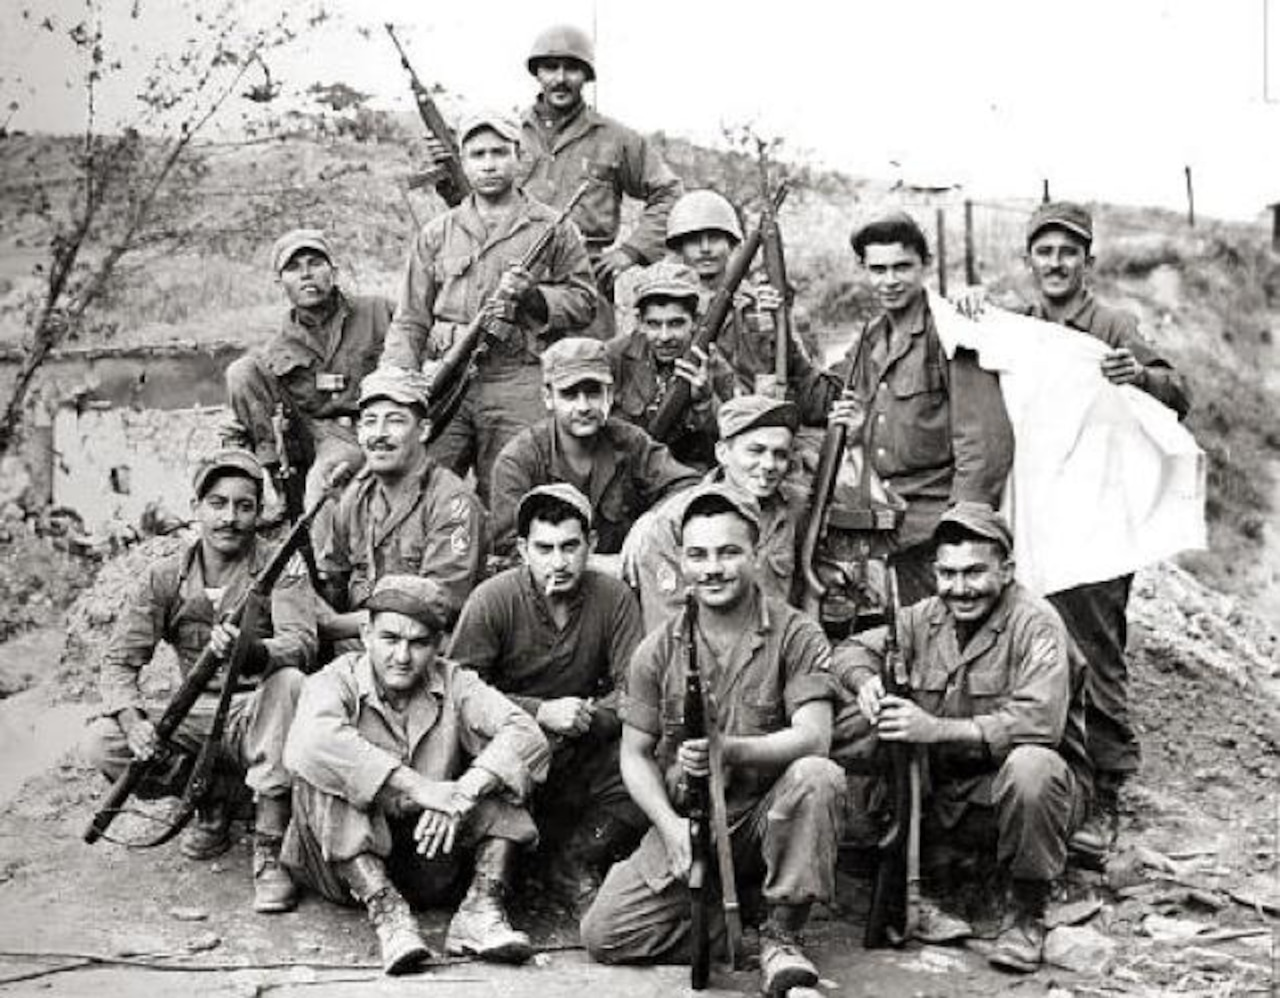 Members of the 65th Infantry Regiment pose for a photo after a firefight during the Korean War. The regiment consisted primarily of Puerto Rican soldiers who spoke mainly Spanish and prided themselves on having mustaches. By 1953, the regiment's soldiers had earned 14 Silver Stars, 23 Bronze Stars for valor and 67 Purple Hearts. Courtesy photo